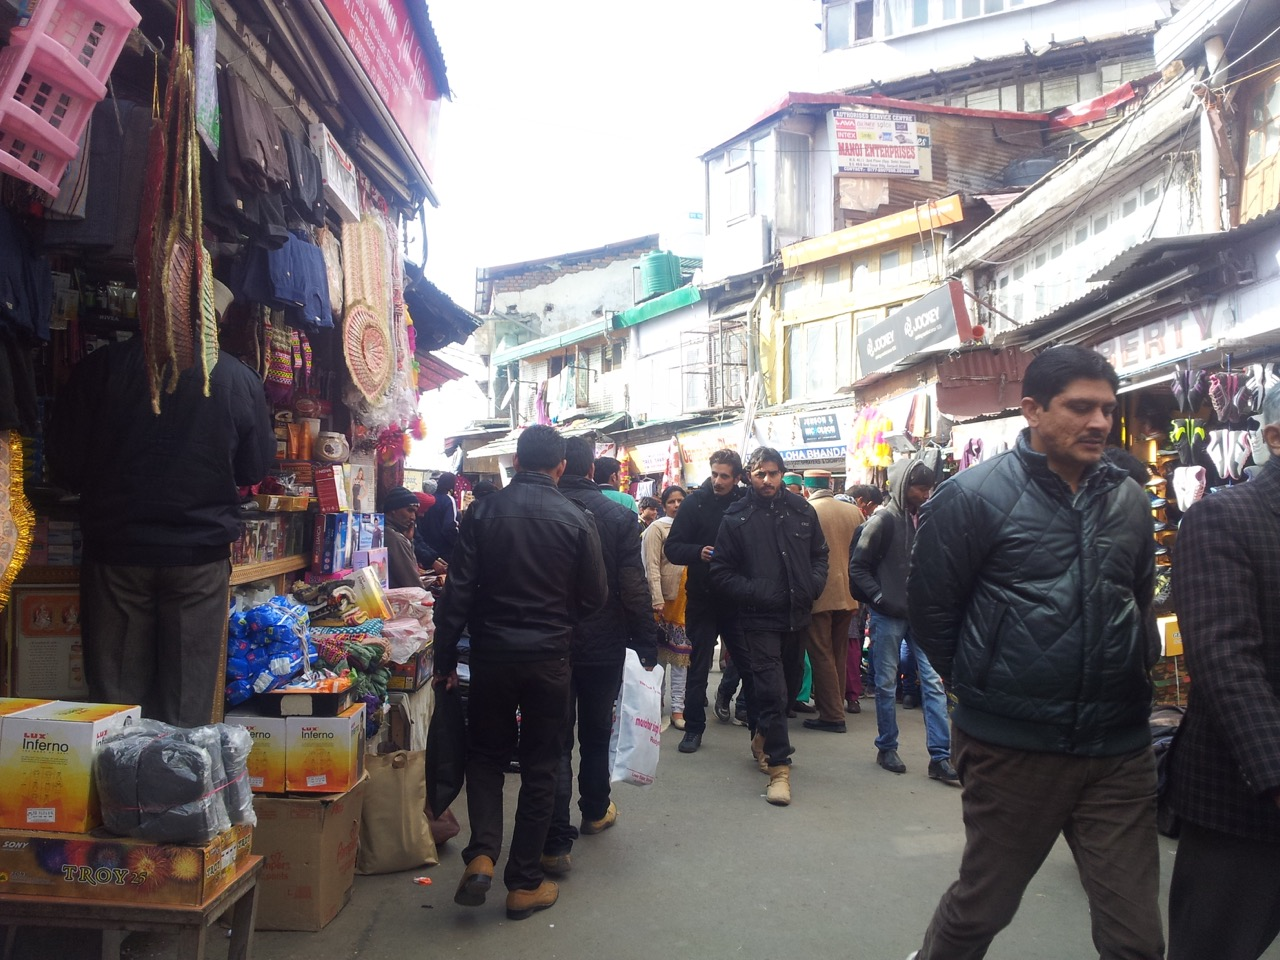 The lower market of Shimla. You'll find anything and everything for normal usage here.